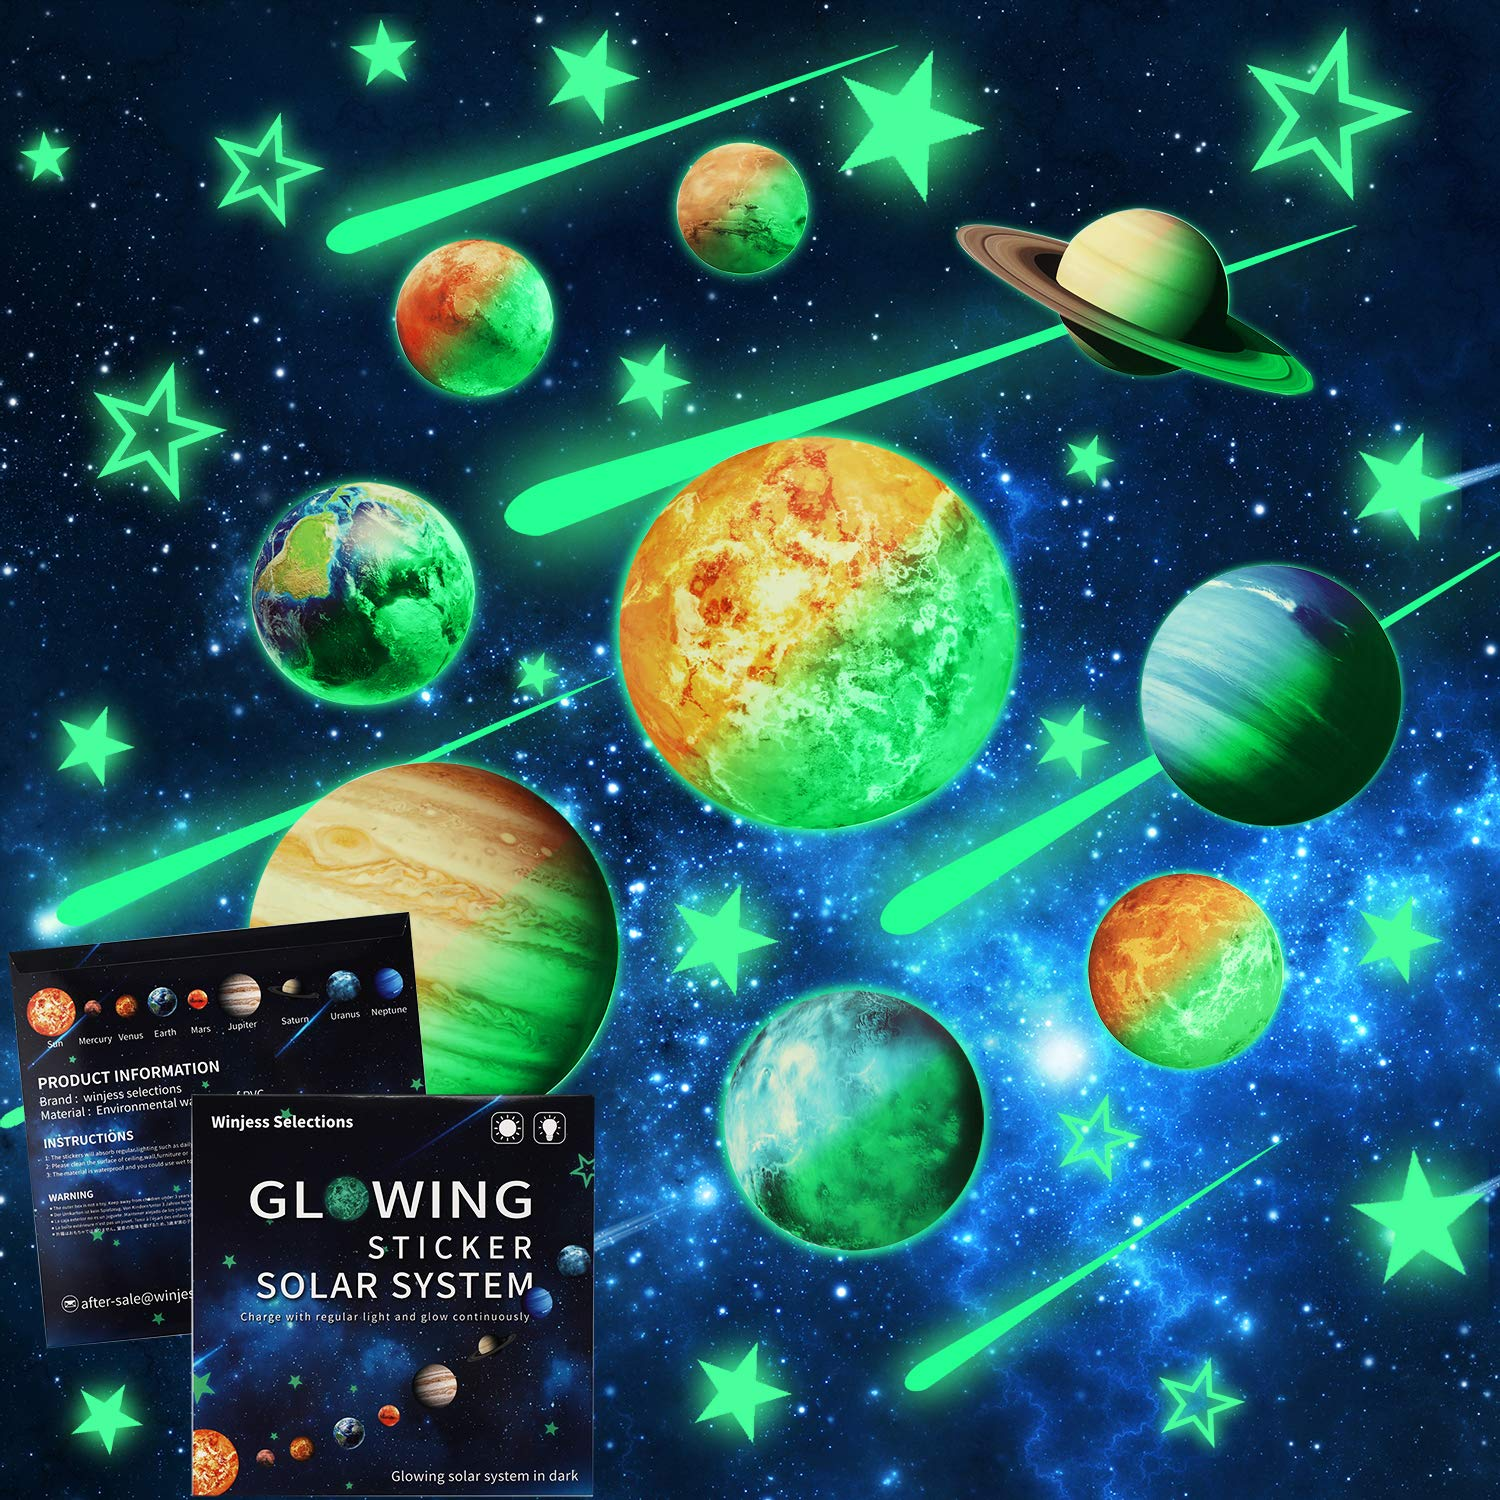 WinjessSelections 48Pcs Glow in The Dark Stars, Planets Wall Stickers Adhesive Wall Ceiling Decal Set Peel Off Solar System and Stars for Kids Bedroom for Boys and Girls Room Decoration by Winjess Selections